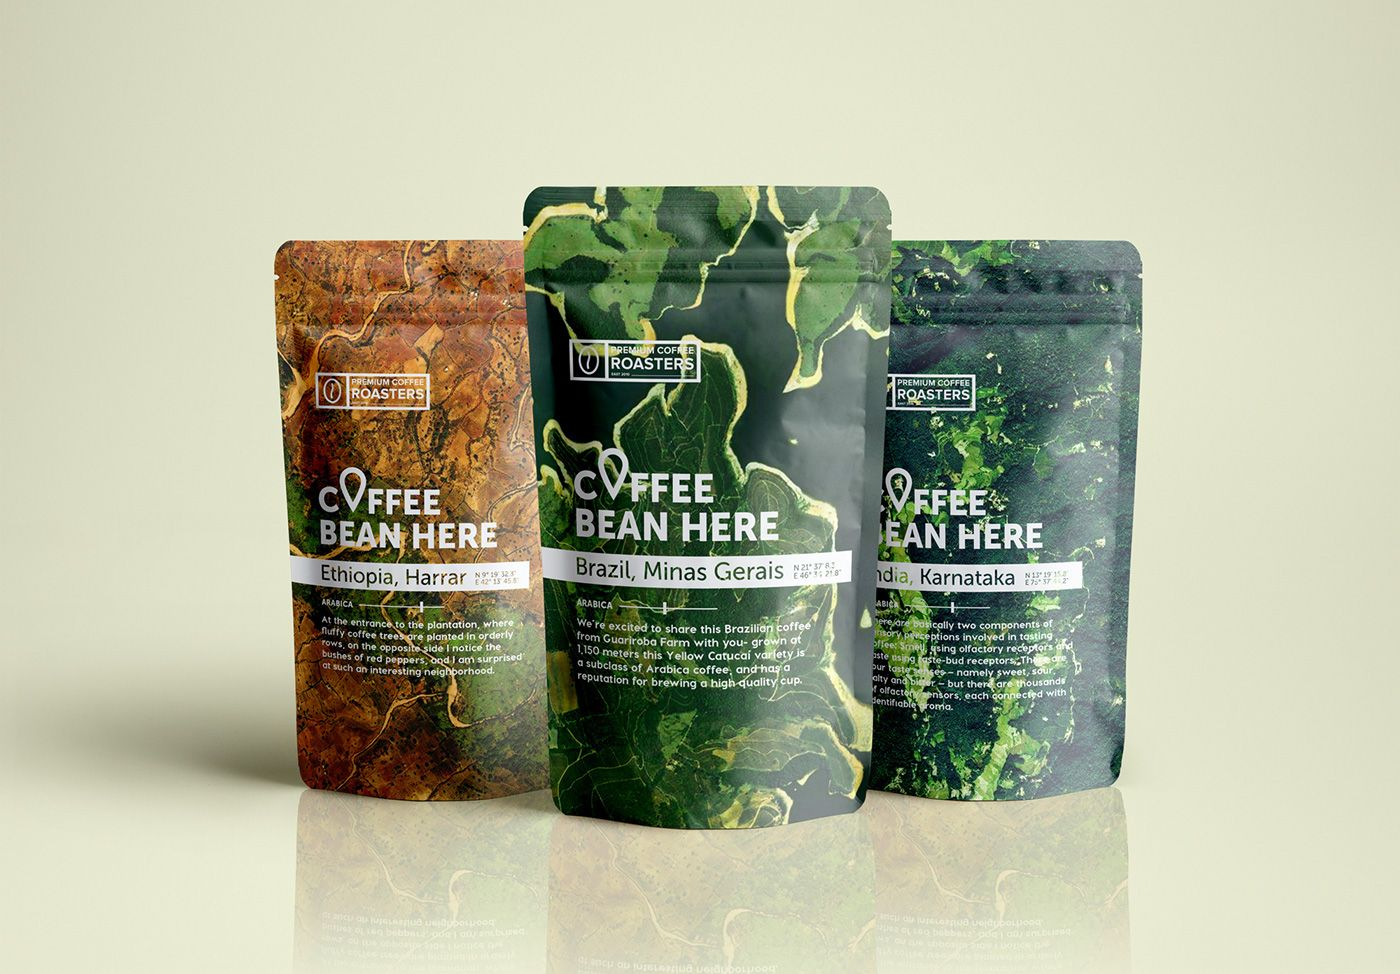 Pin by Hoi Yang on Packaging Reference Coffee packaging